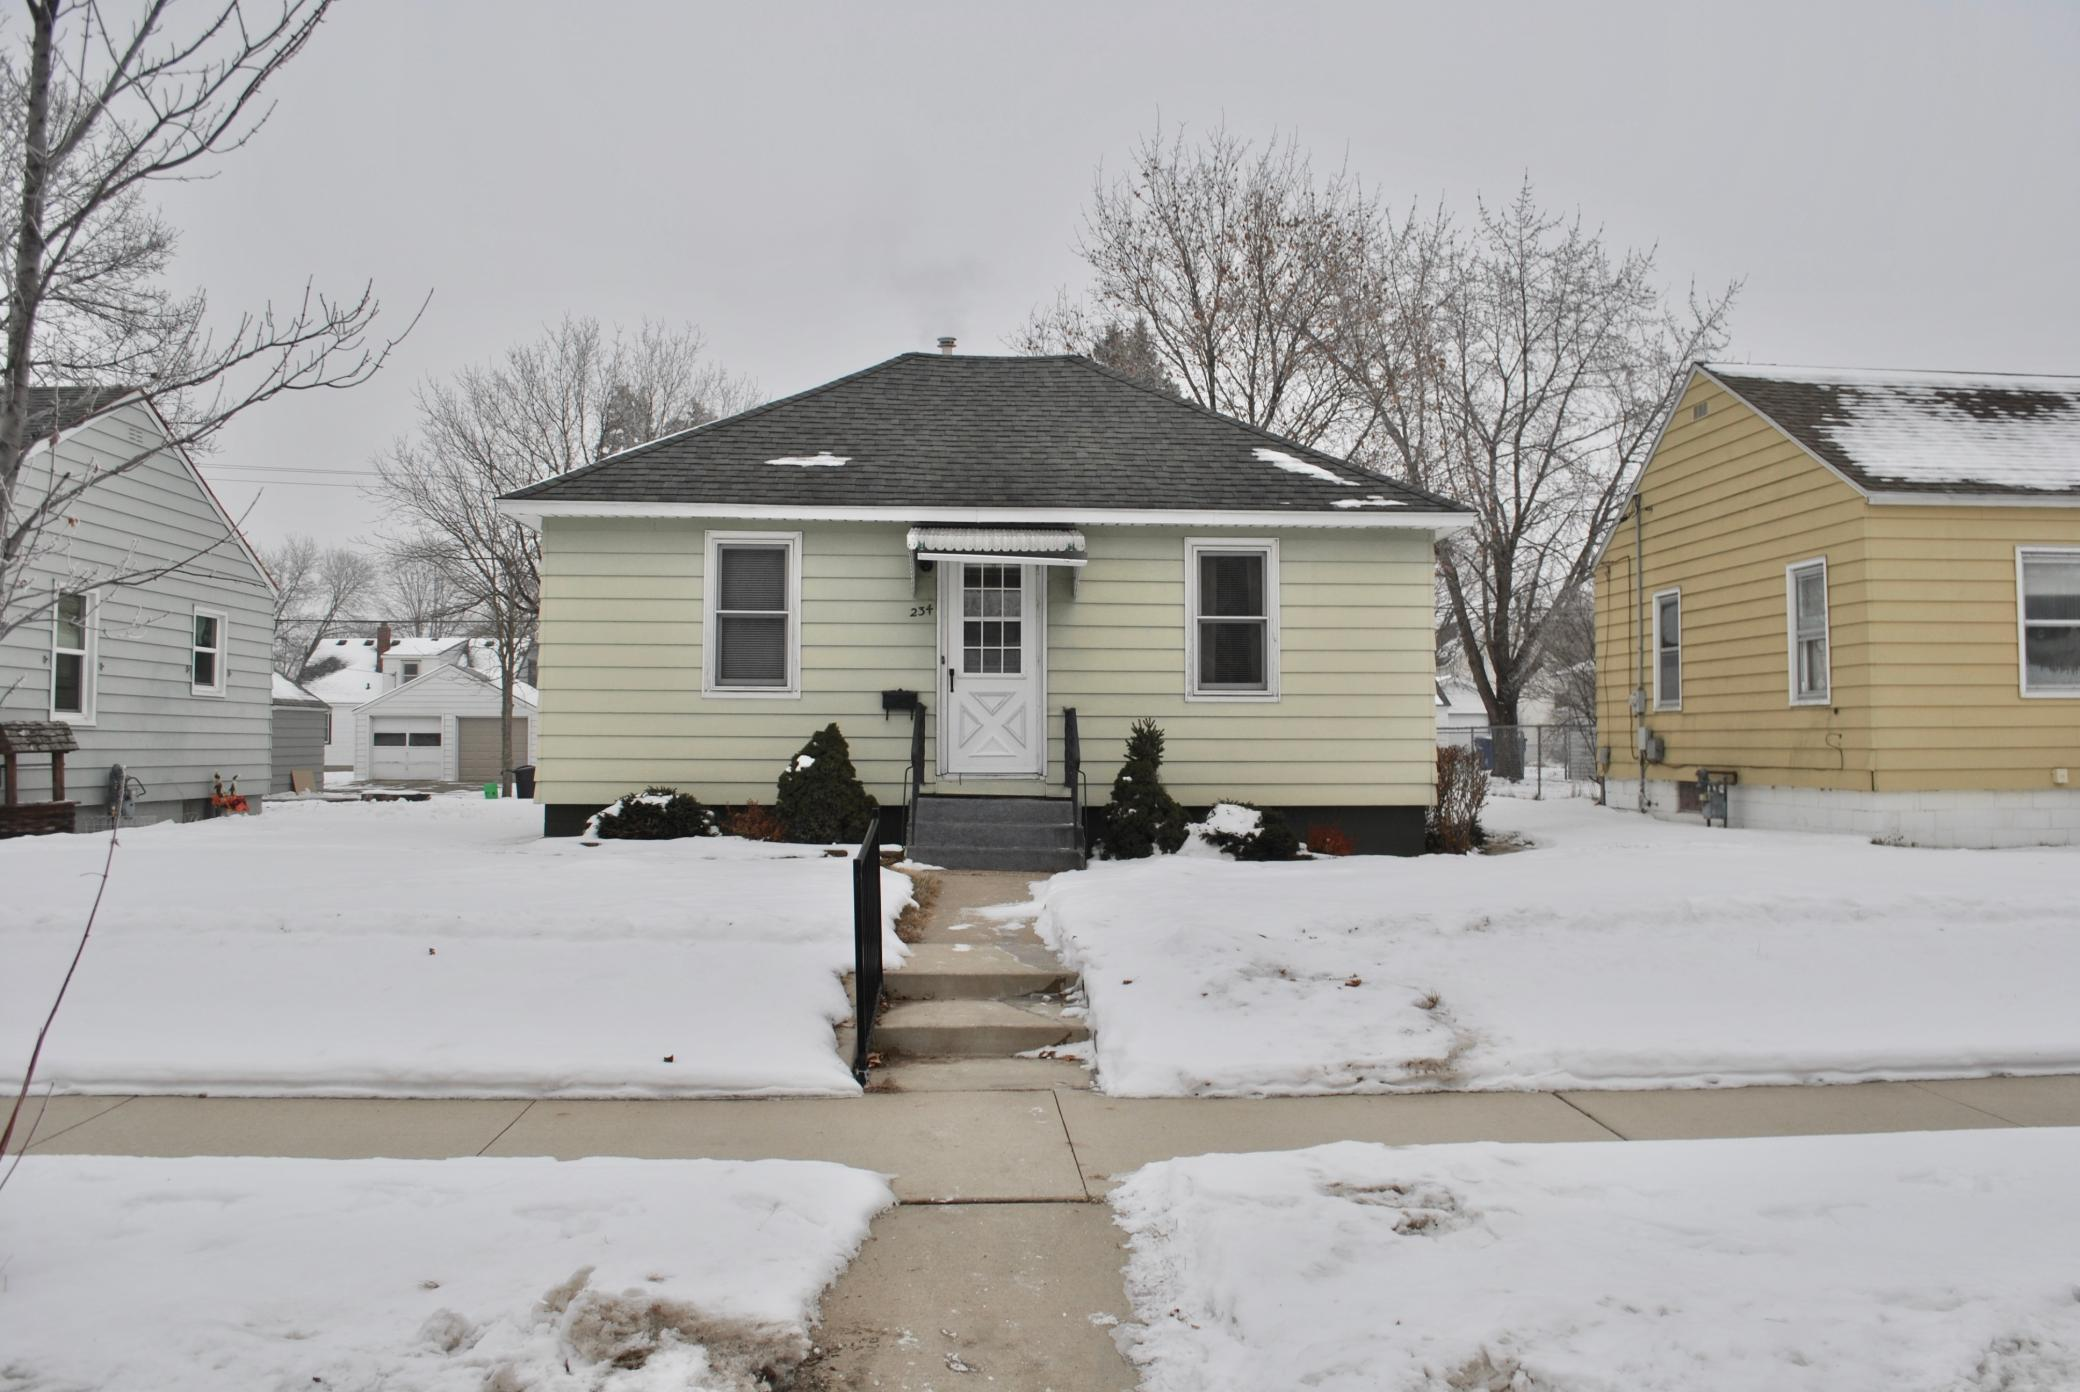 Opportunity for the investor or Handyman! 2 bedroom, 1 full bath, 1 story home with newer windows.  Maintenance free siding, Central Air, Updated Electrical and a 2 stall detached garage. Not far from convinces and bus line.